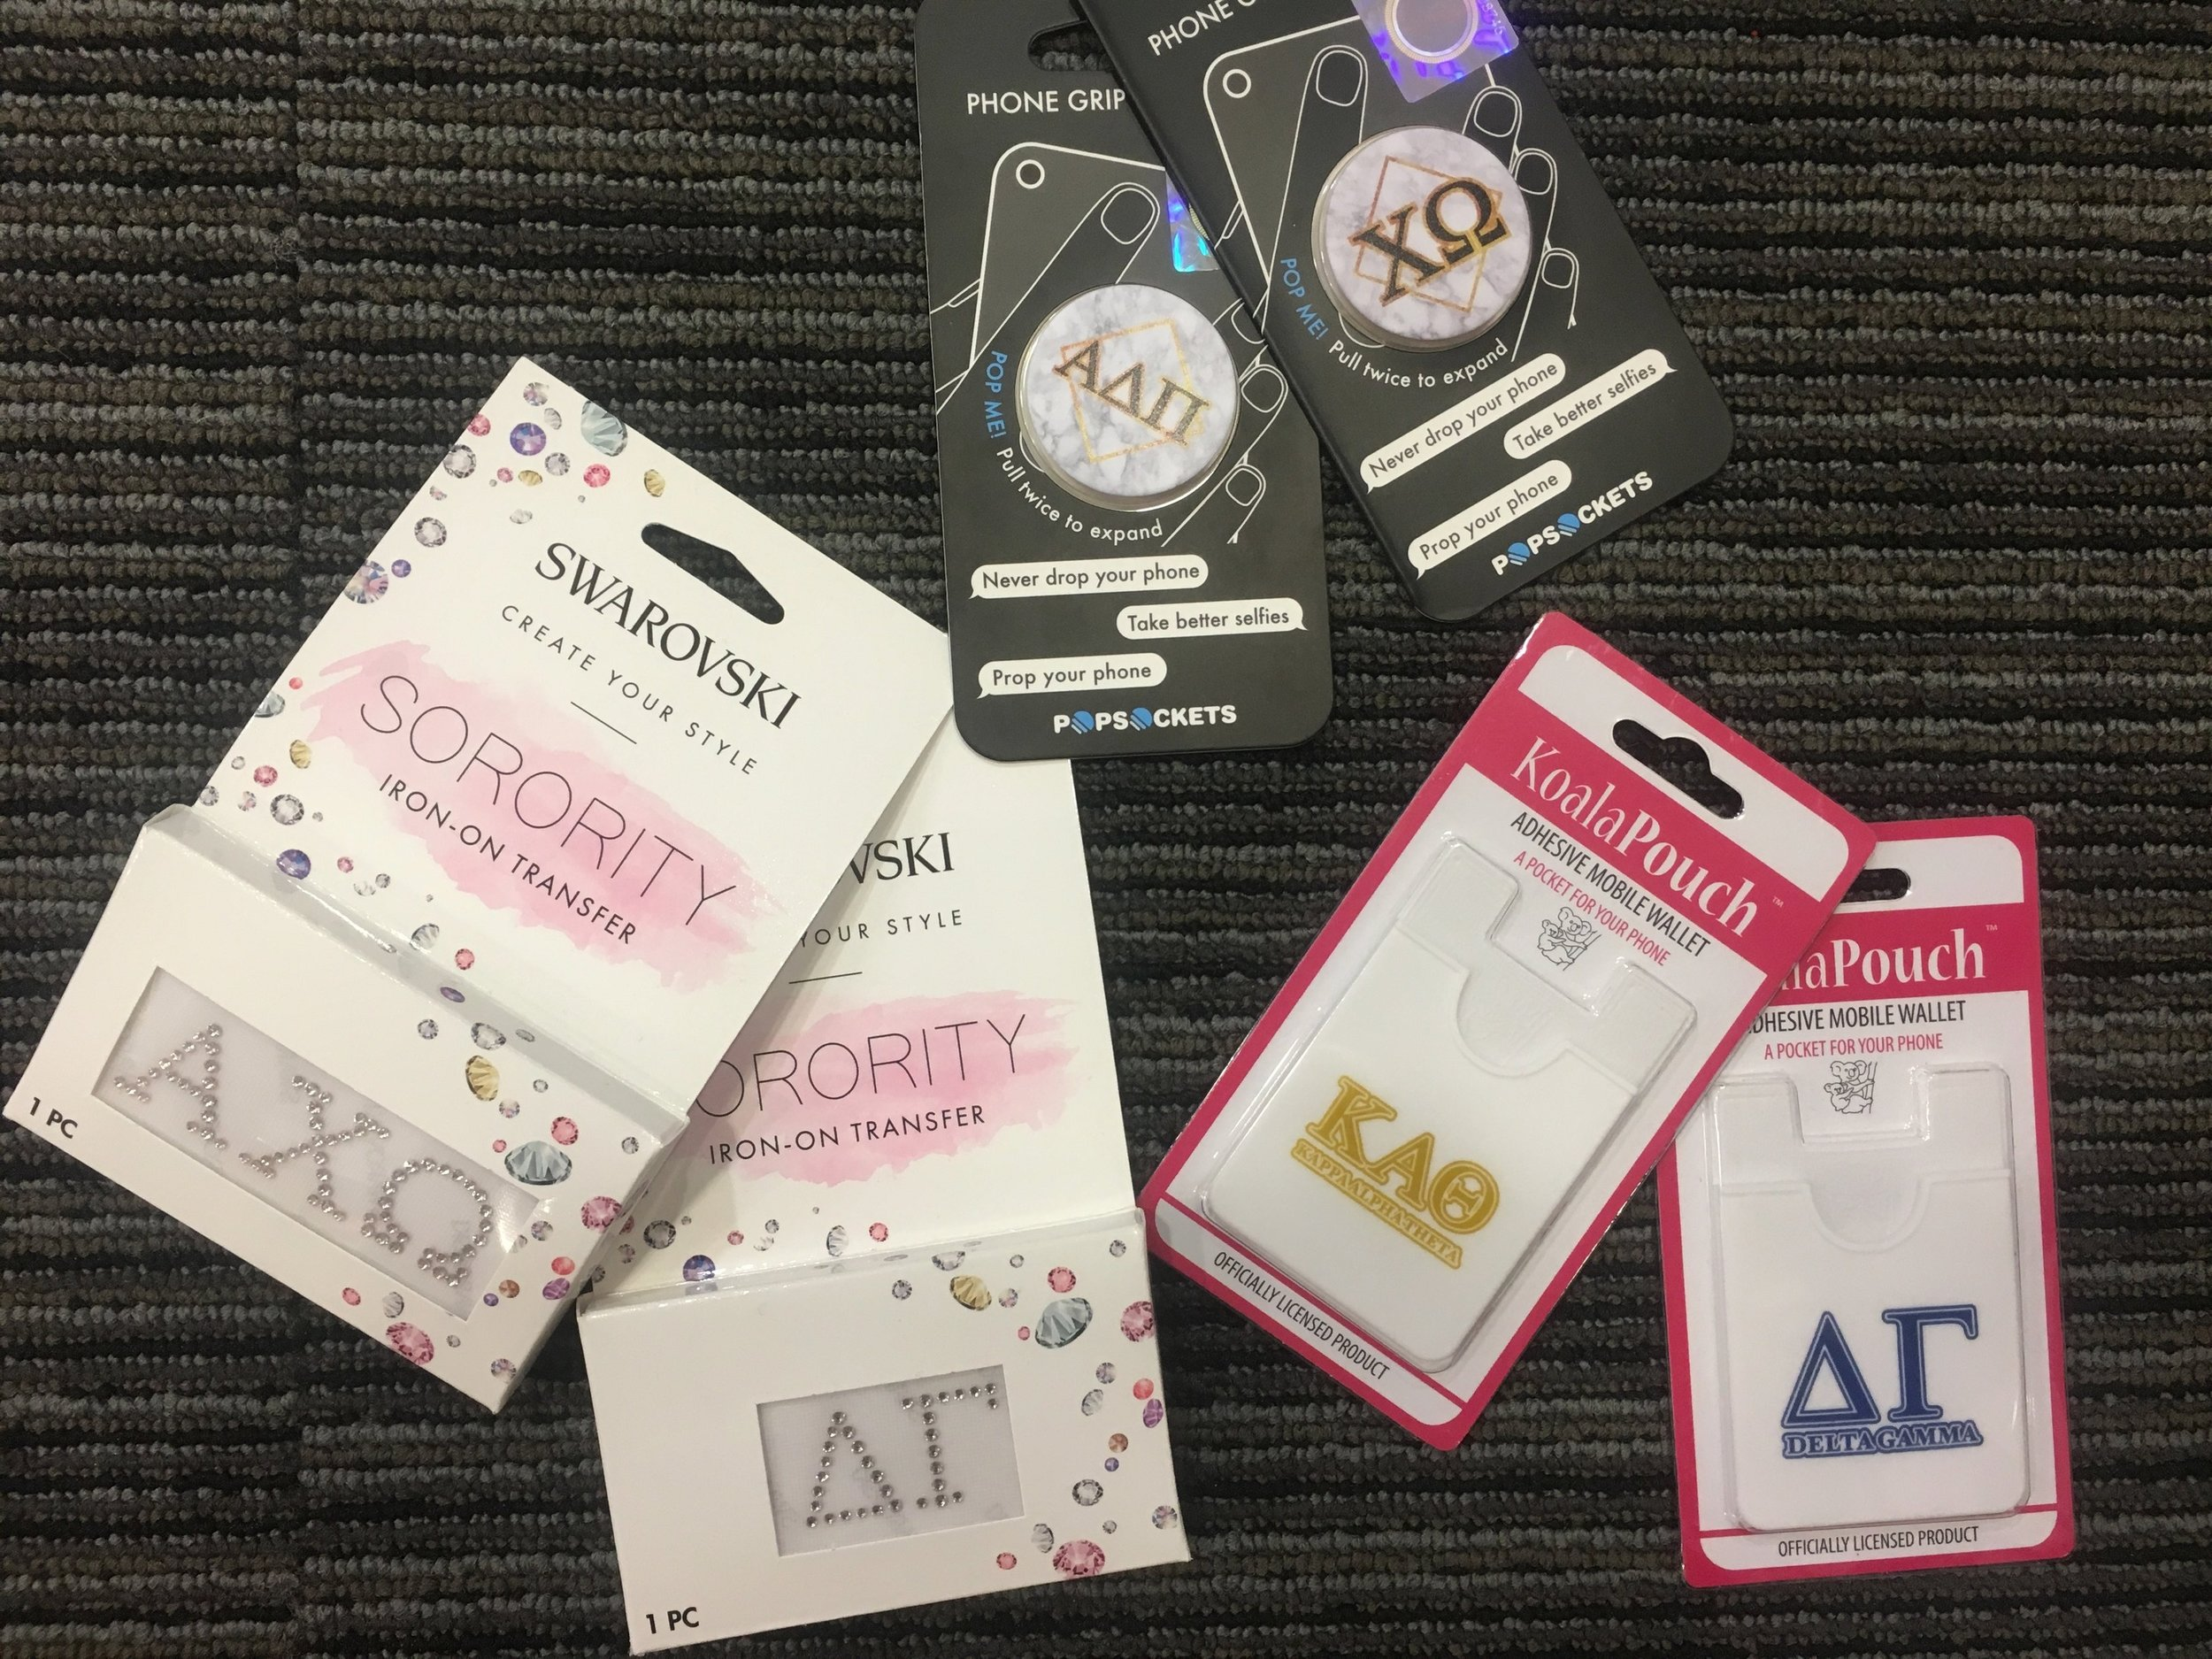 Assorted Phone Accessories - Jewel Iron-ons: $15.99Pop Sockets: $15.00Card Cases: $7.99